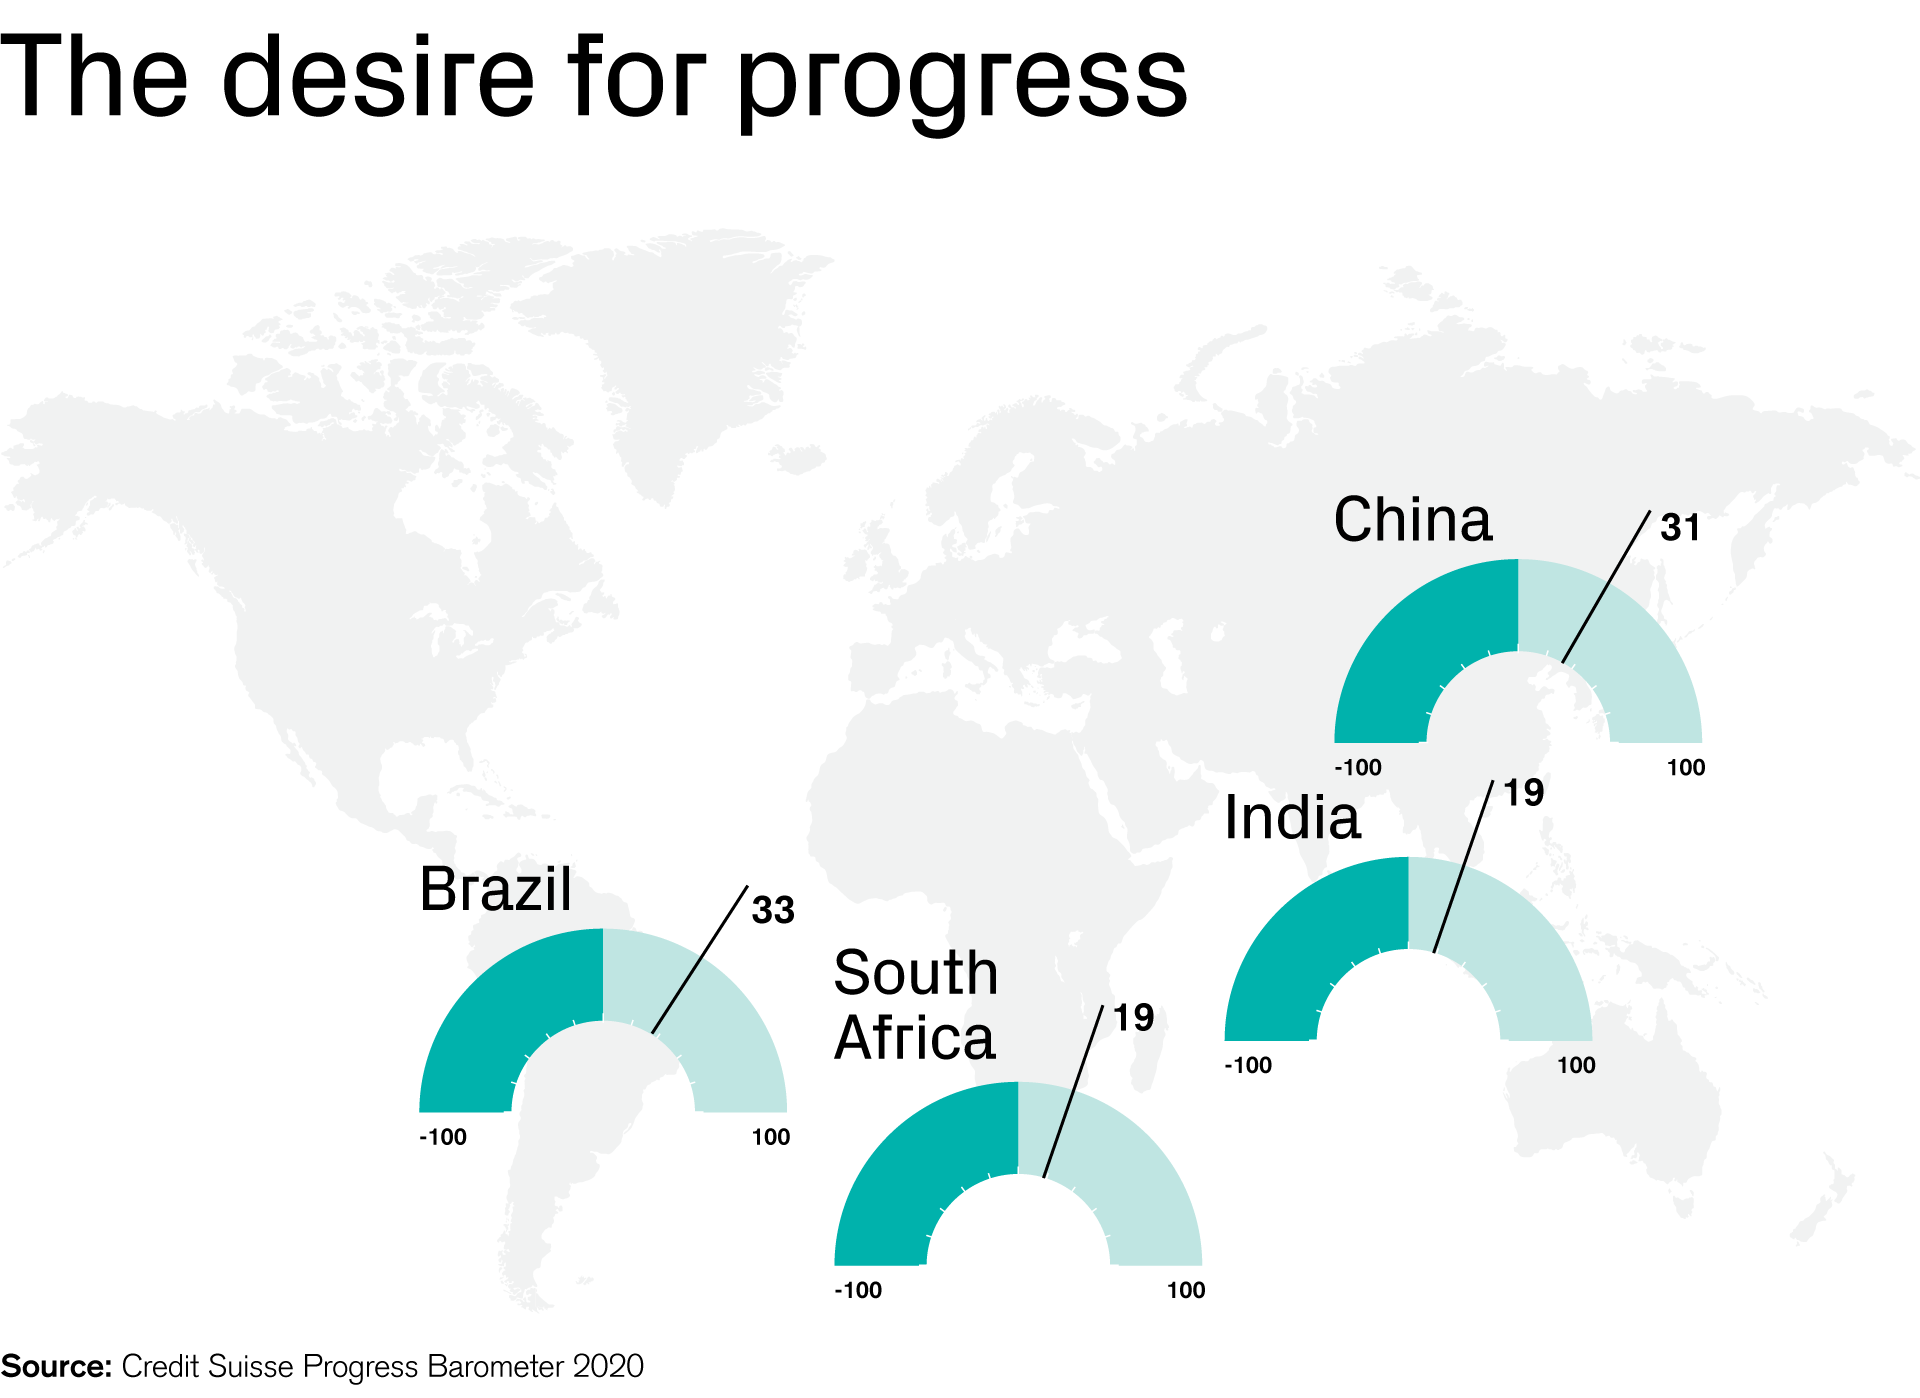 Emerging societies tend to record a greater readiness for progress.